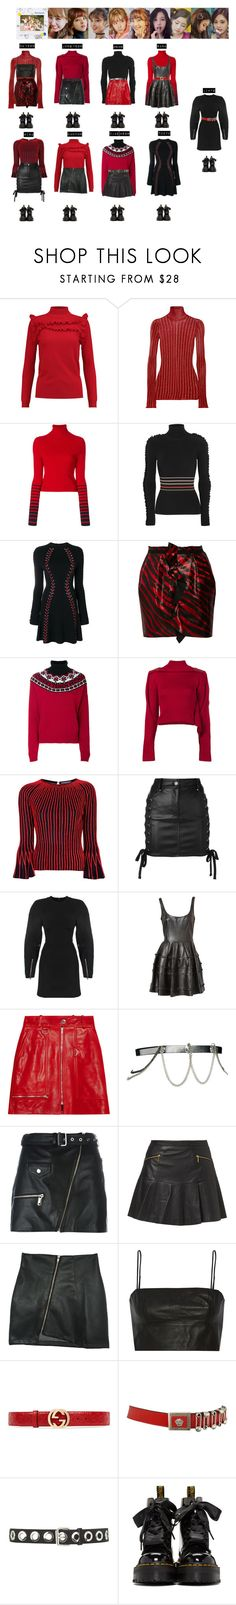 """""""TWICE - LIKEY❤️"""" by vvvan99 ❤ liked on Polyvore featuring Madeleine Thompson, E L L E R Y, Tommy Hilfiger, Roksanda, Alexander McQueen, Isabel Marant, Fendi, Y/Project, Versus and ASOS"""